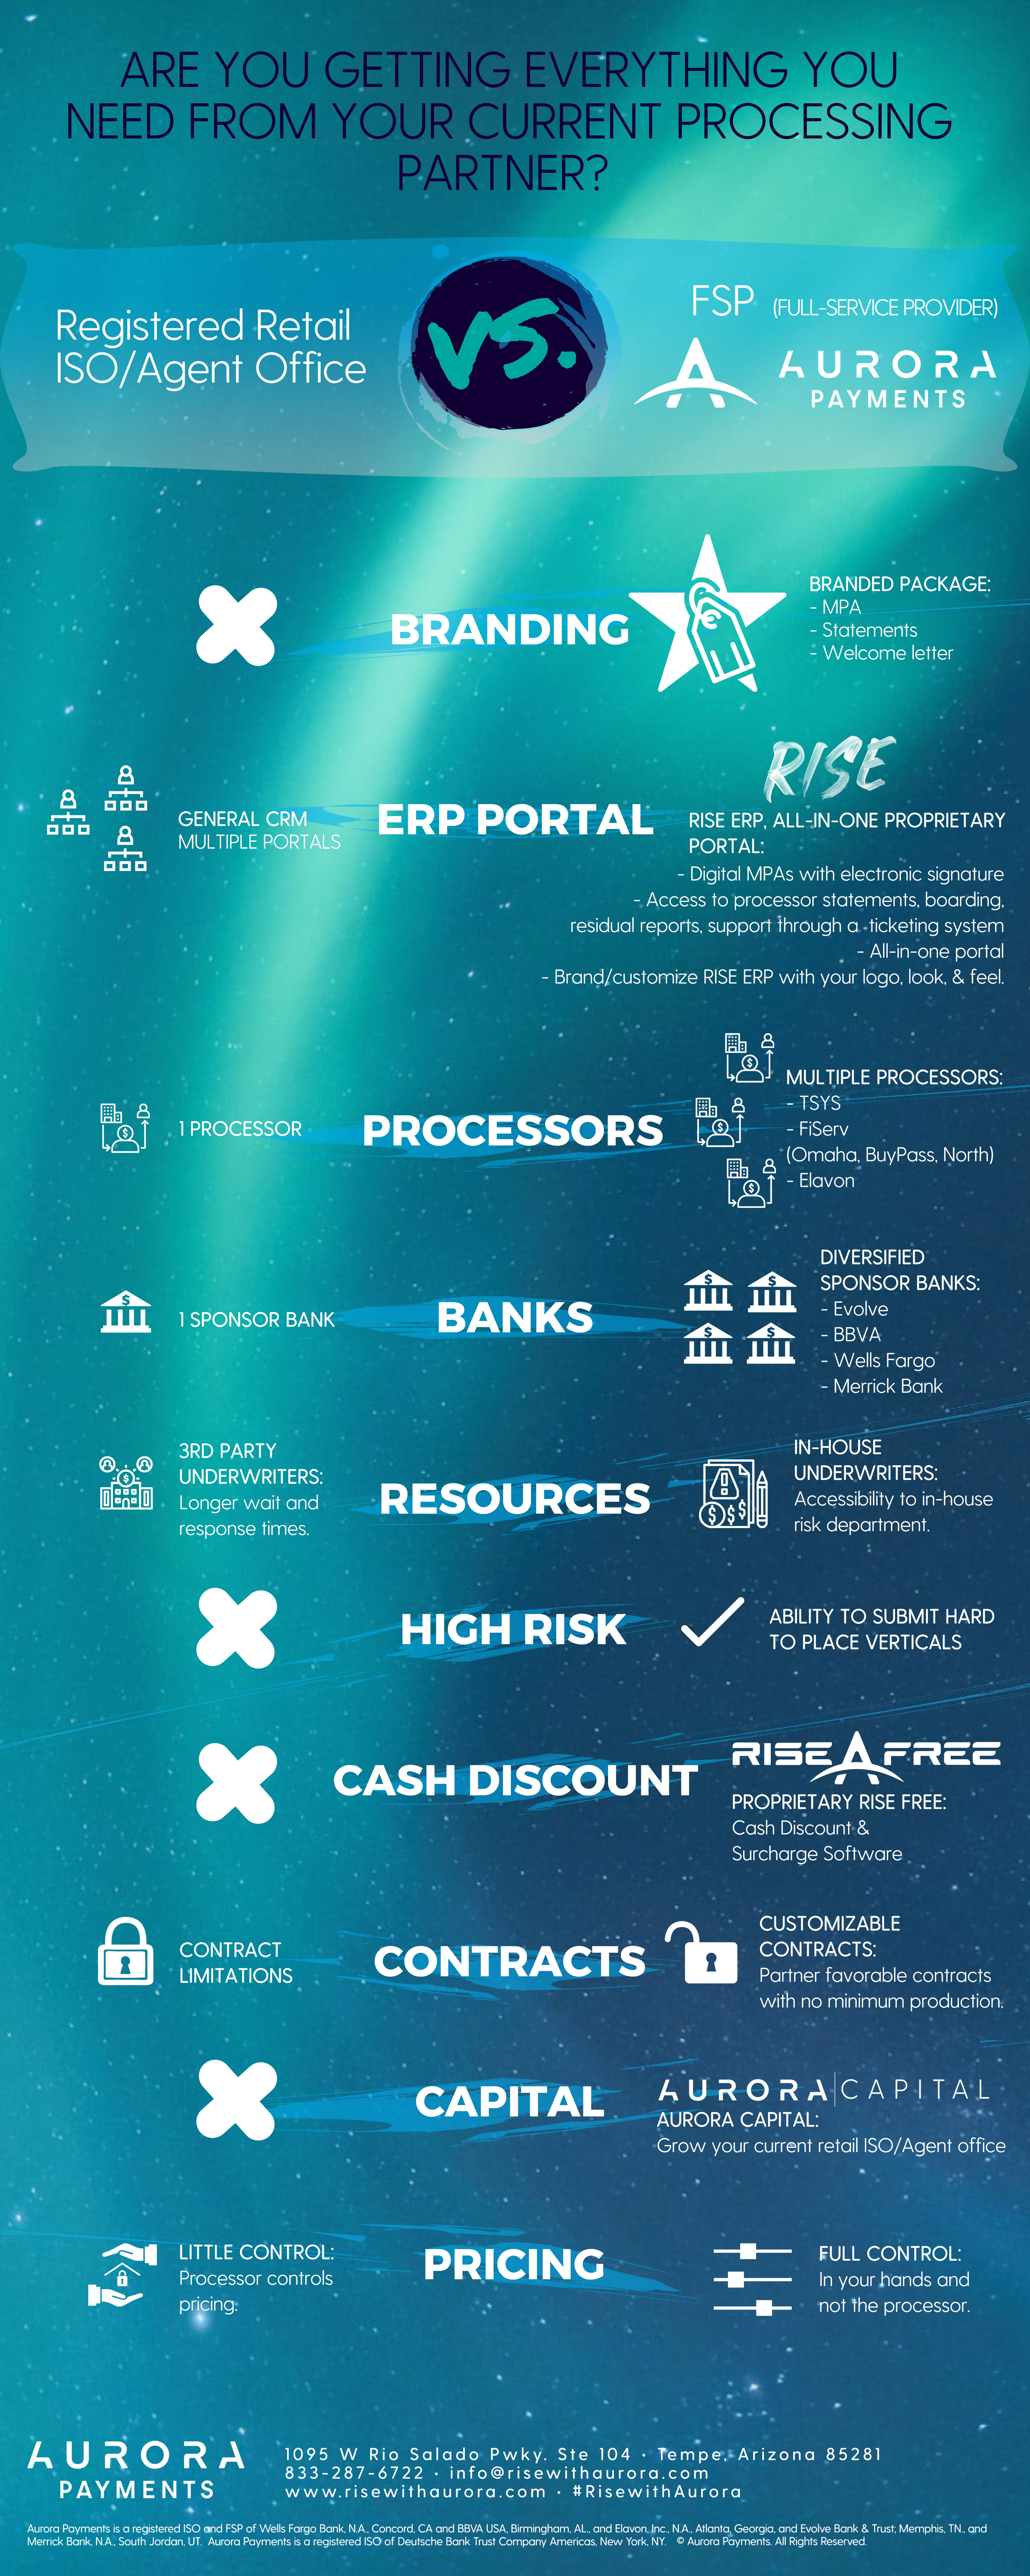 Registered-retail-ISO_agent-office-vs-fsp-Aurora-Payments_infographic